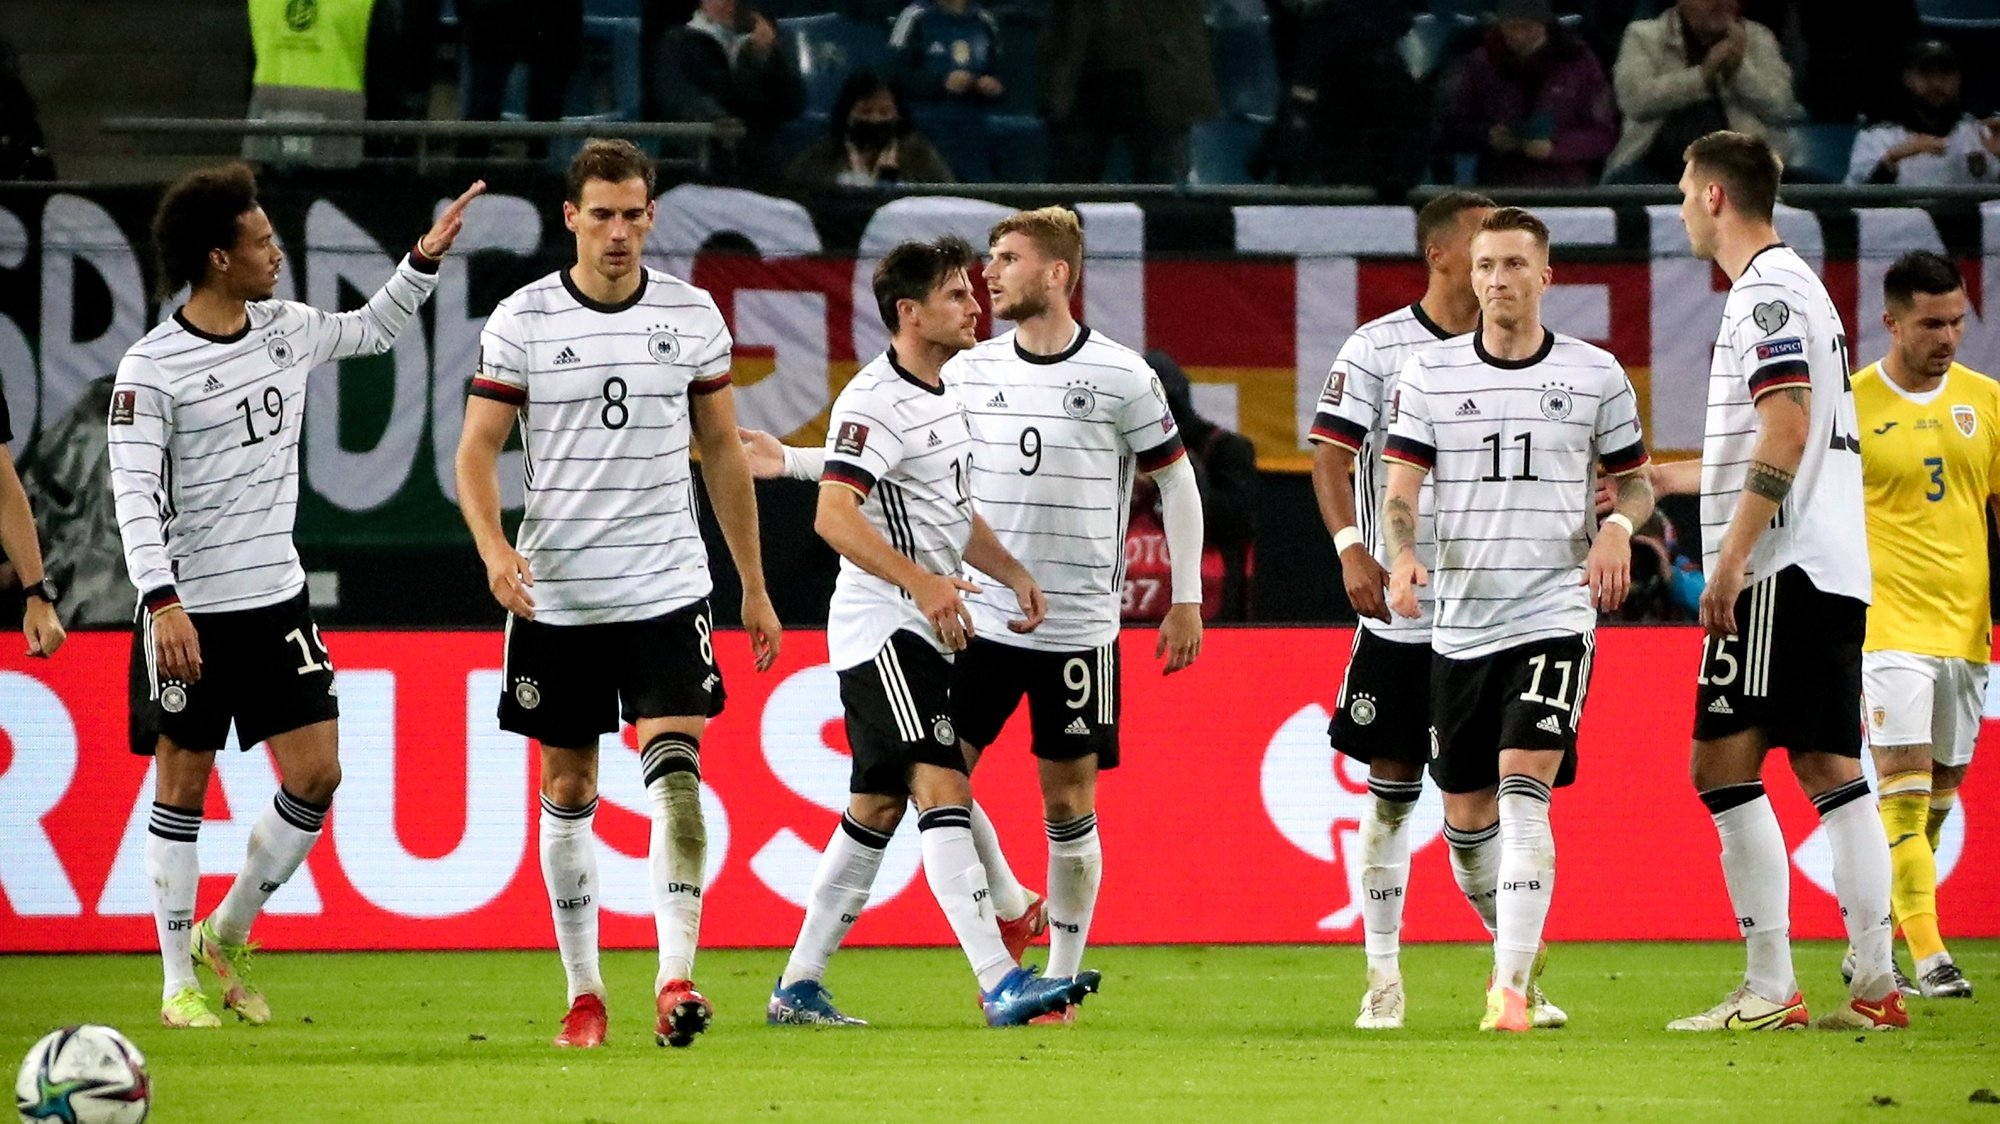 epa09514143 Players of Germany react after scoring the 1-1 equalizer during the FIFA World Cup Qatar 2022 qualifying Group J soccer match between Germany and Romania in Hamburg, Germany, 08 October 2021.  EPA/FOCKE STRANGMANN